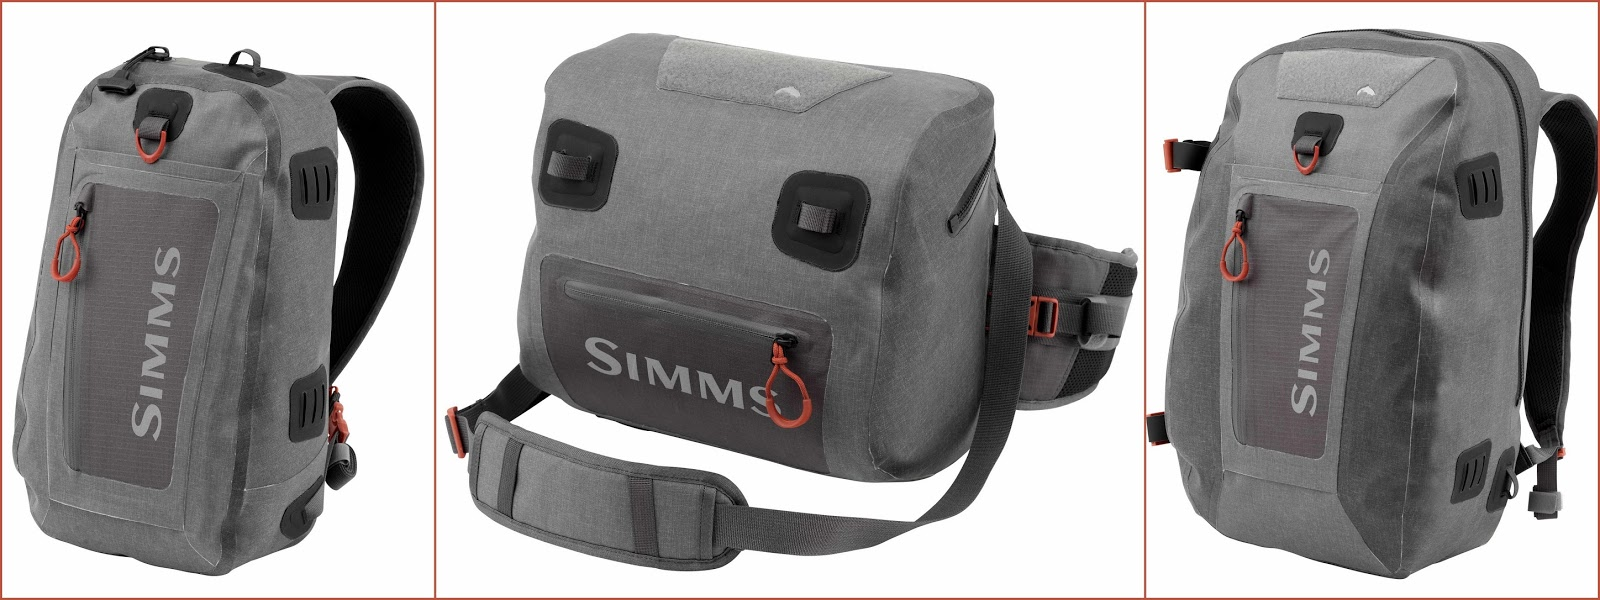 32122dcdba90 Gorge Fly Shop Blog  New for 2018 - Simms G3 Waders and Dry Creek Z ...